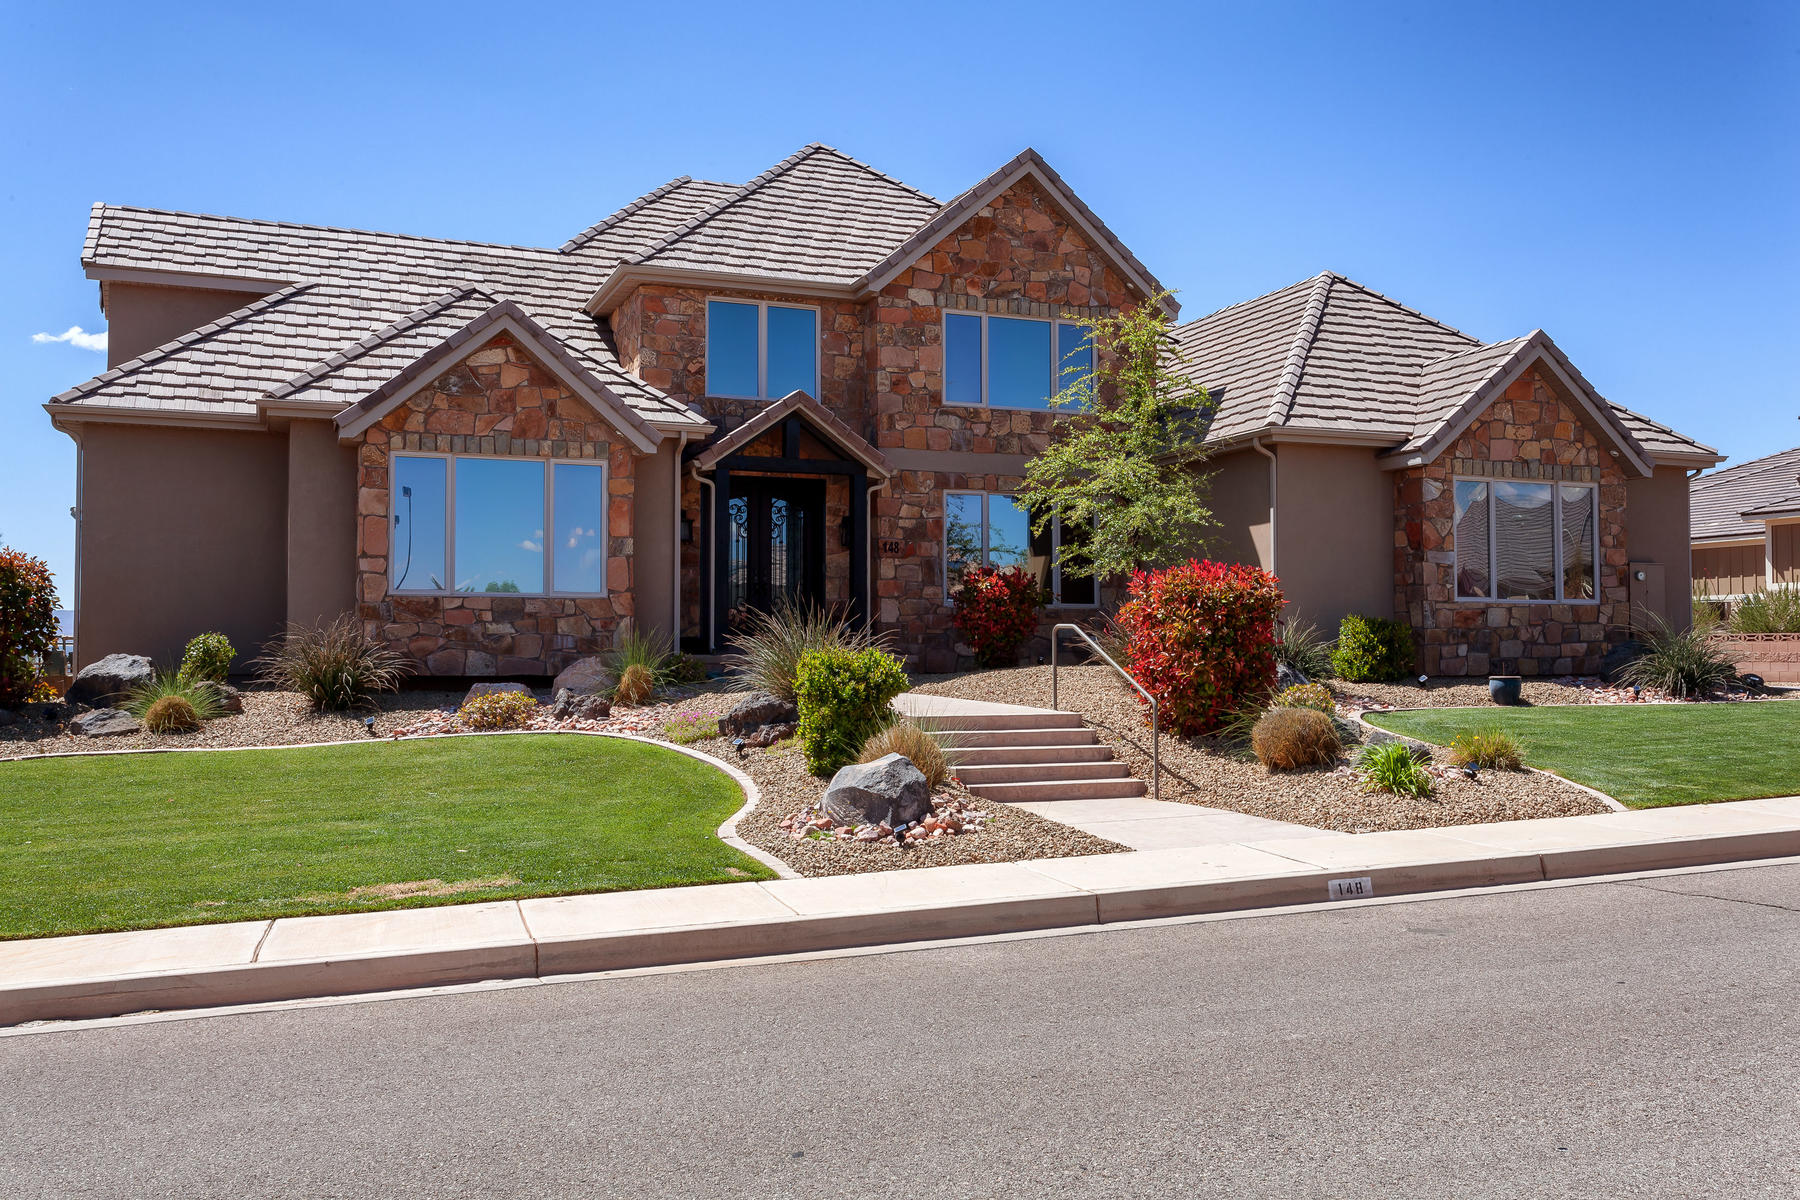 Single Family Home for Sale at Grand View of St. George and Surrounding Mountains 148 South Eastridge Dr St. George, Utah 84790 United States